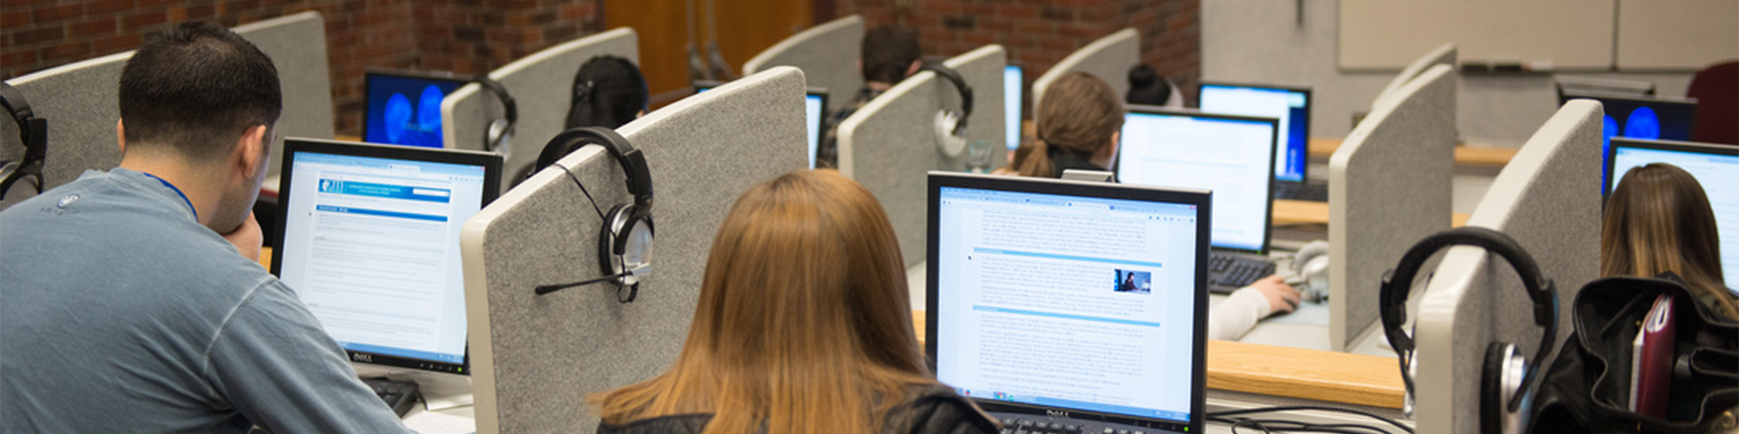 Picture of students sitting in a lecture center classroom